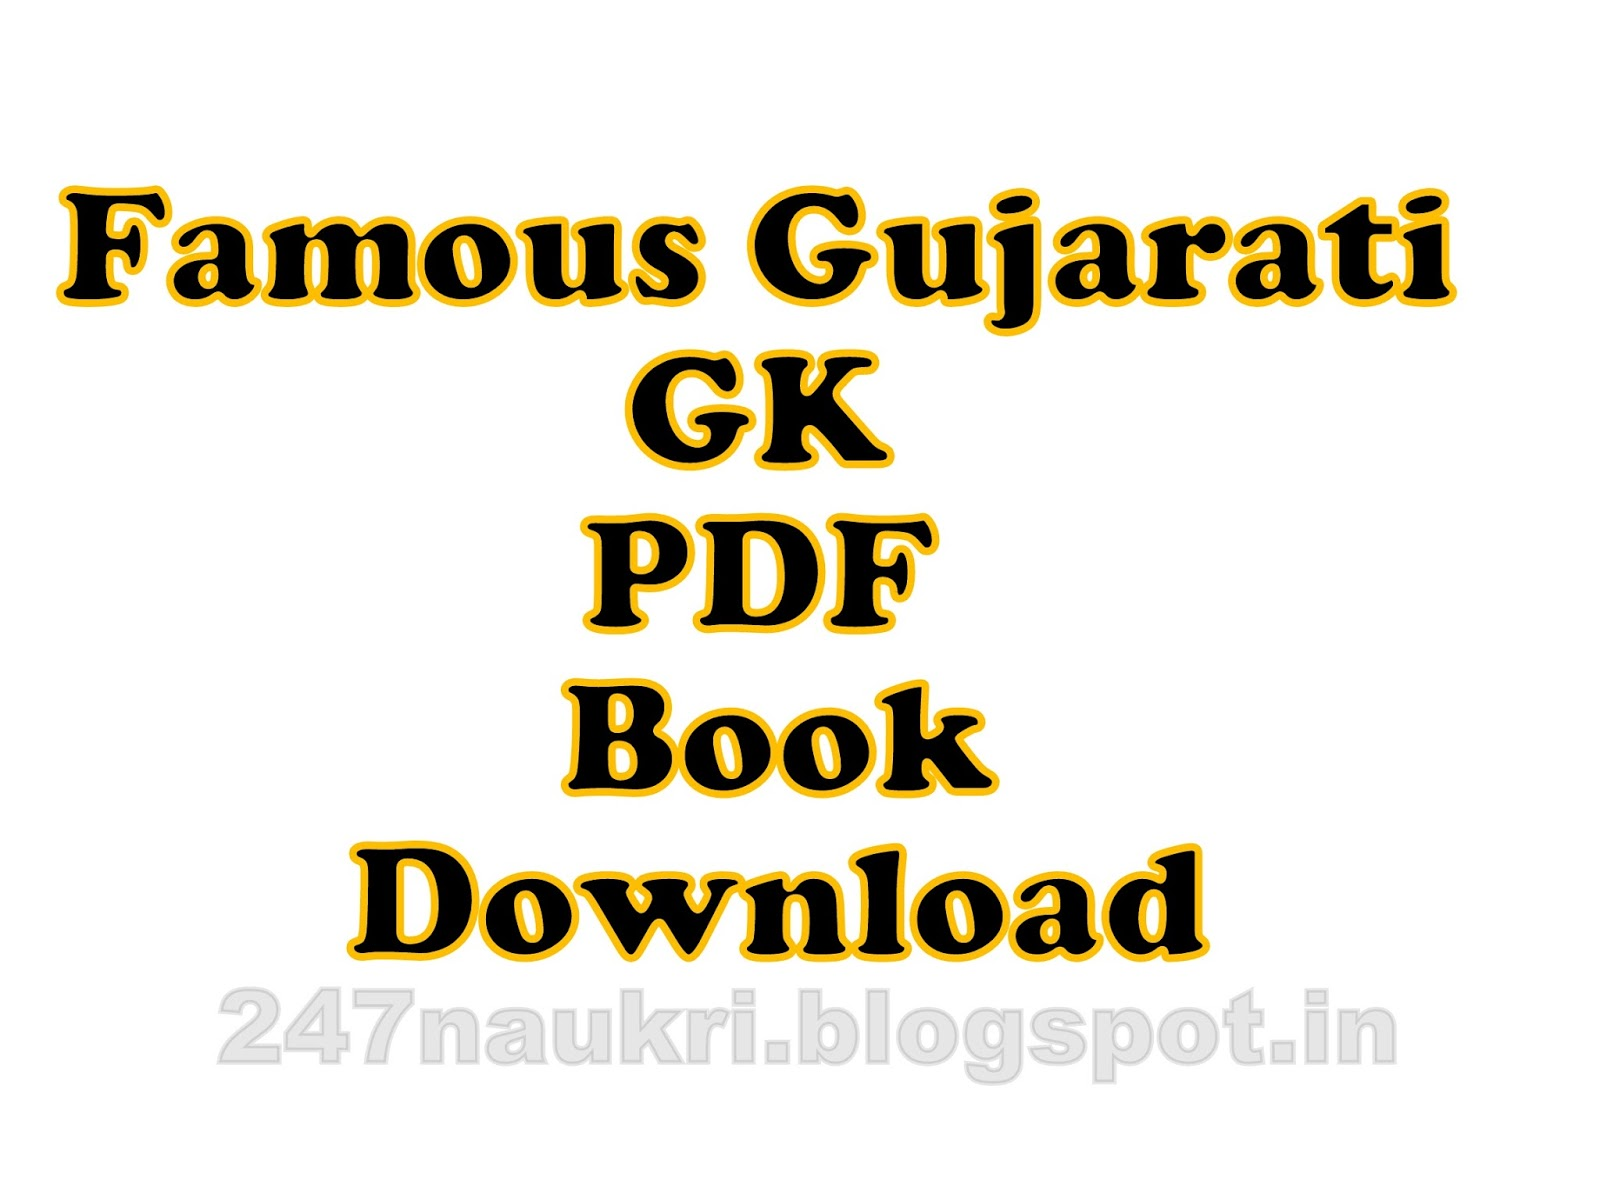 Gujarati books pdf telegram channel. betin league tricks telegram channel.